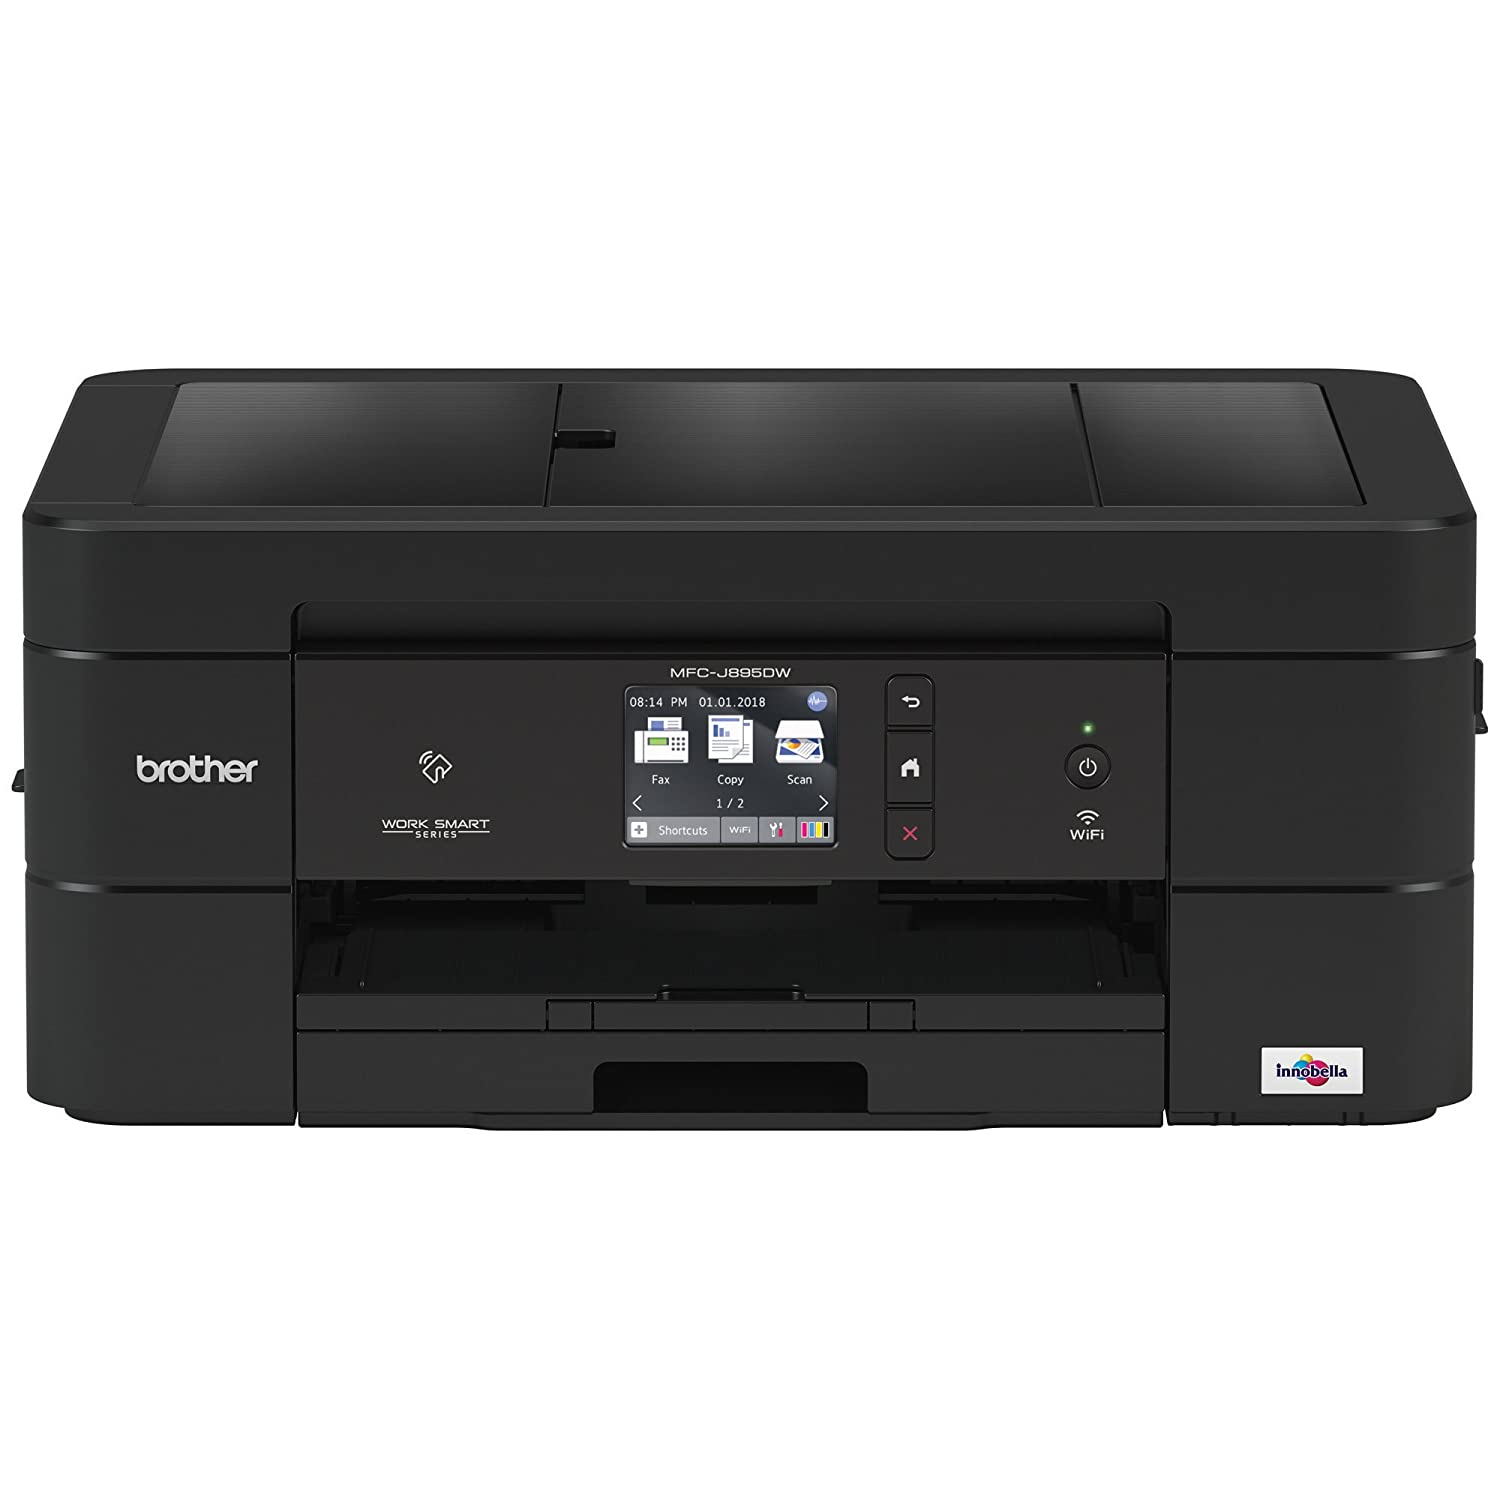 Top 11 Best Printers for Teachers under $100 Reviews 10